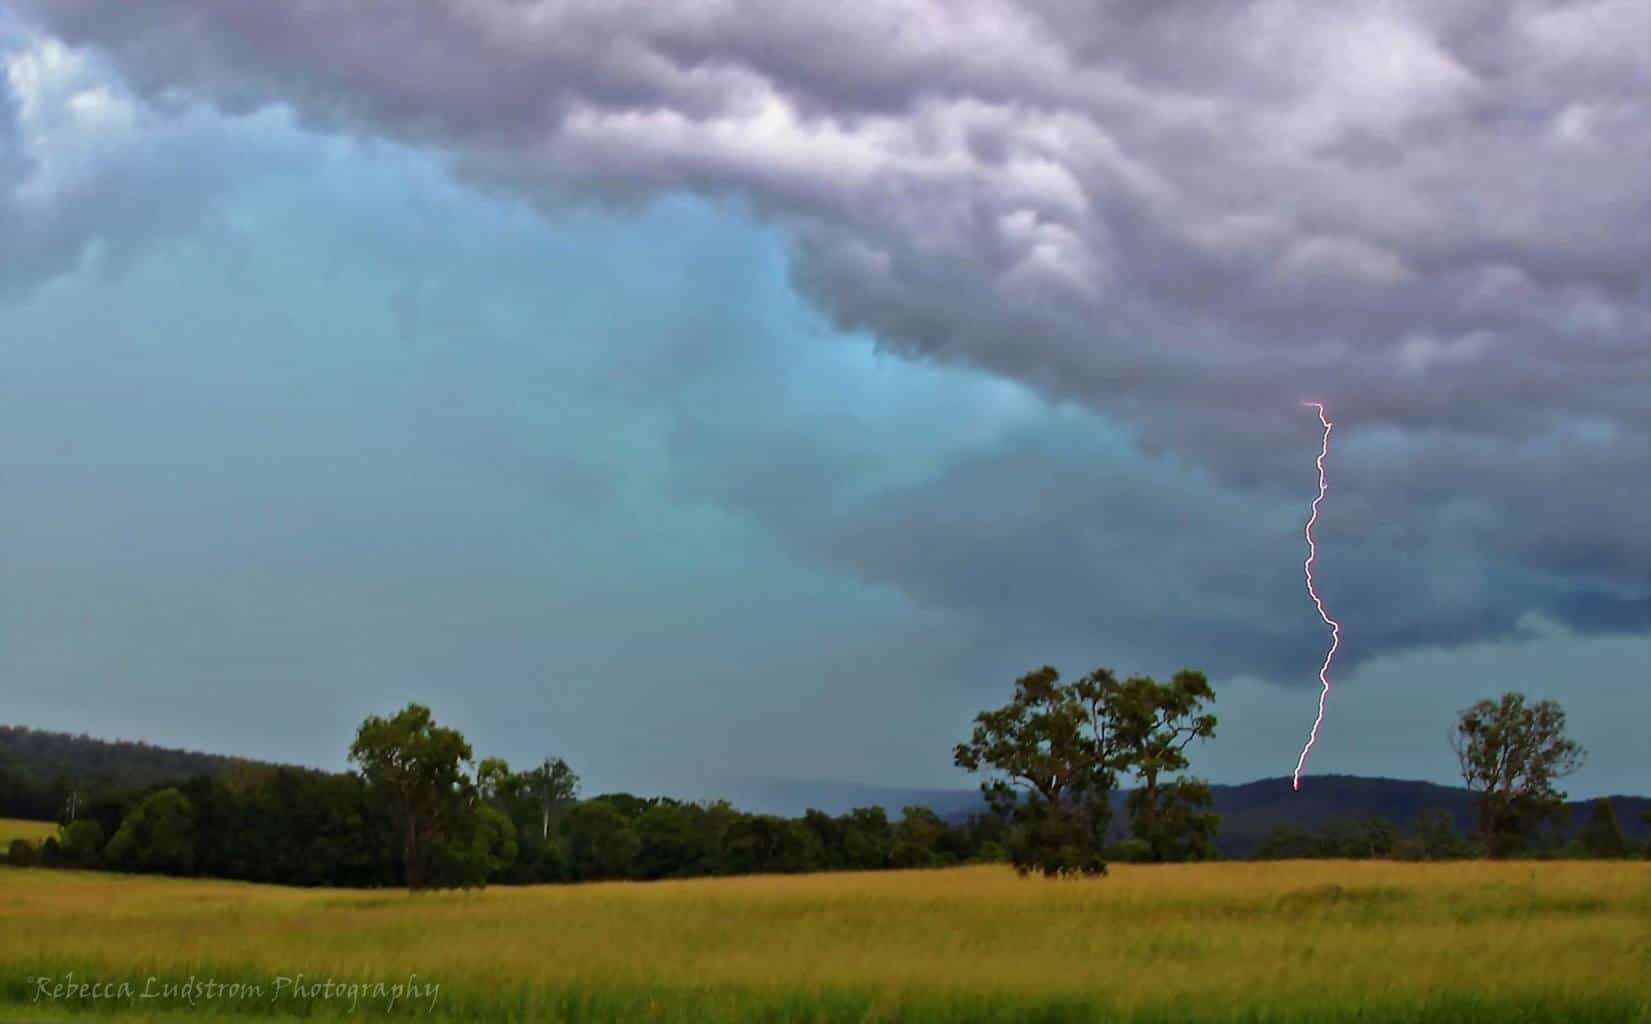 Think this is my first post here Love the shots being shared This shot was from 23rd January 2016 in Glenreagh, located near Coffs Harbour New South Wales Australia. On this day it was really windy and had the camera set up in the back of my station wagon and glad there wasn't too much blur. I have only been chasing for 2 years when I can. I strive to be able to get shots like I've seen on here one day